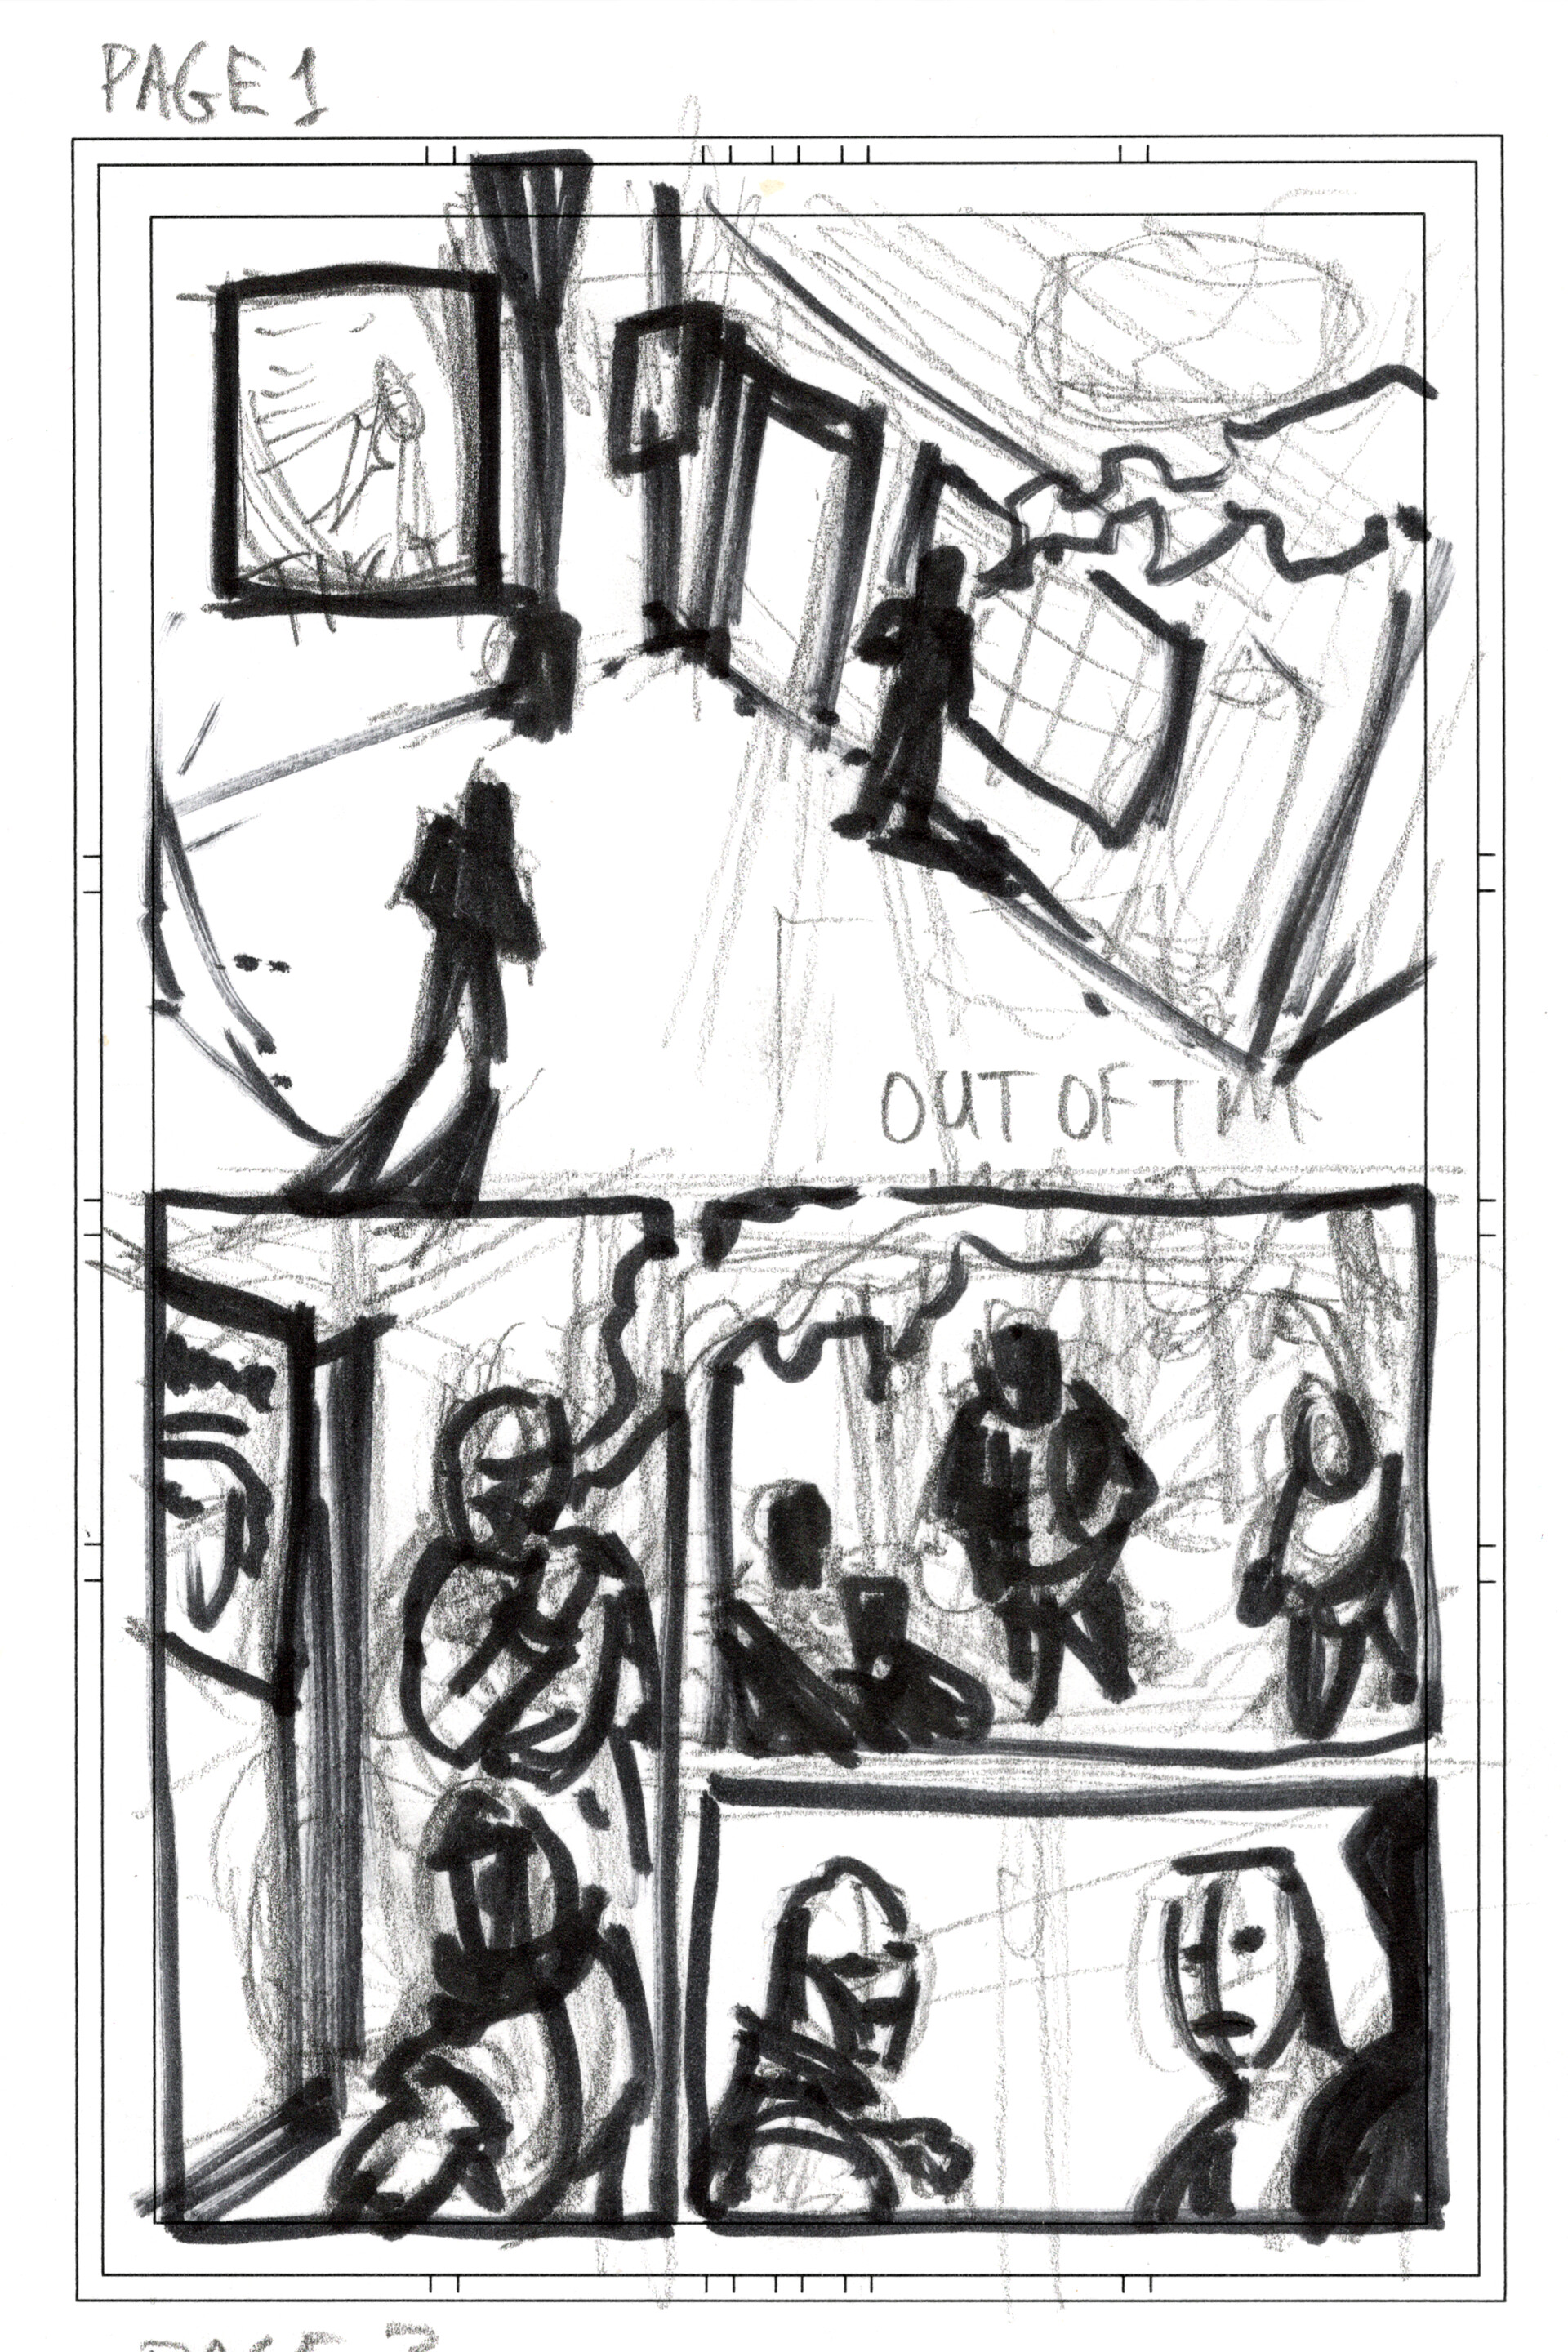 Loc nguyen out of time thumbnails page 01 08